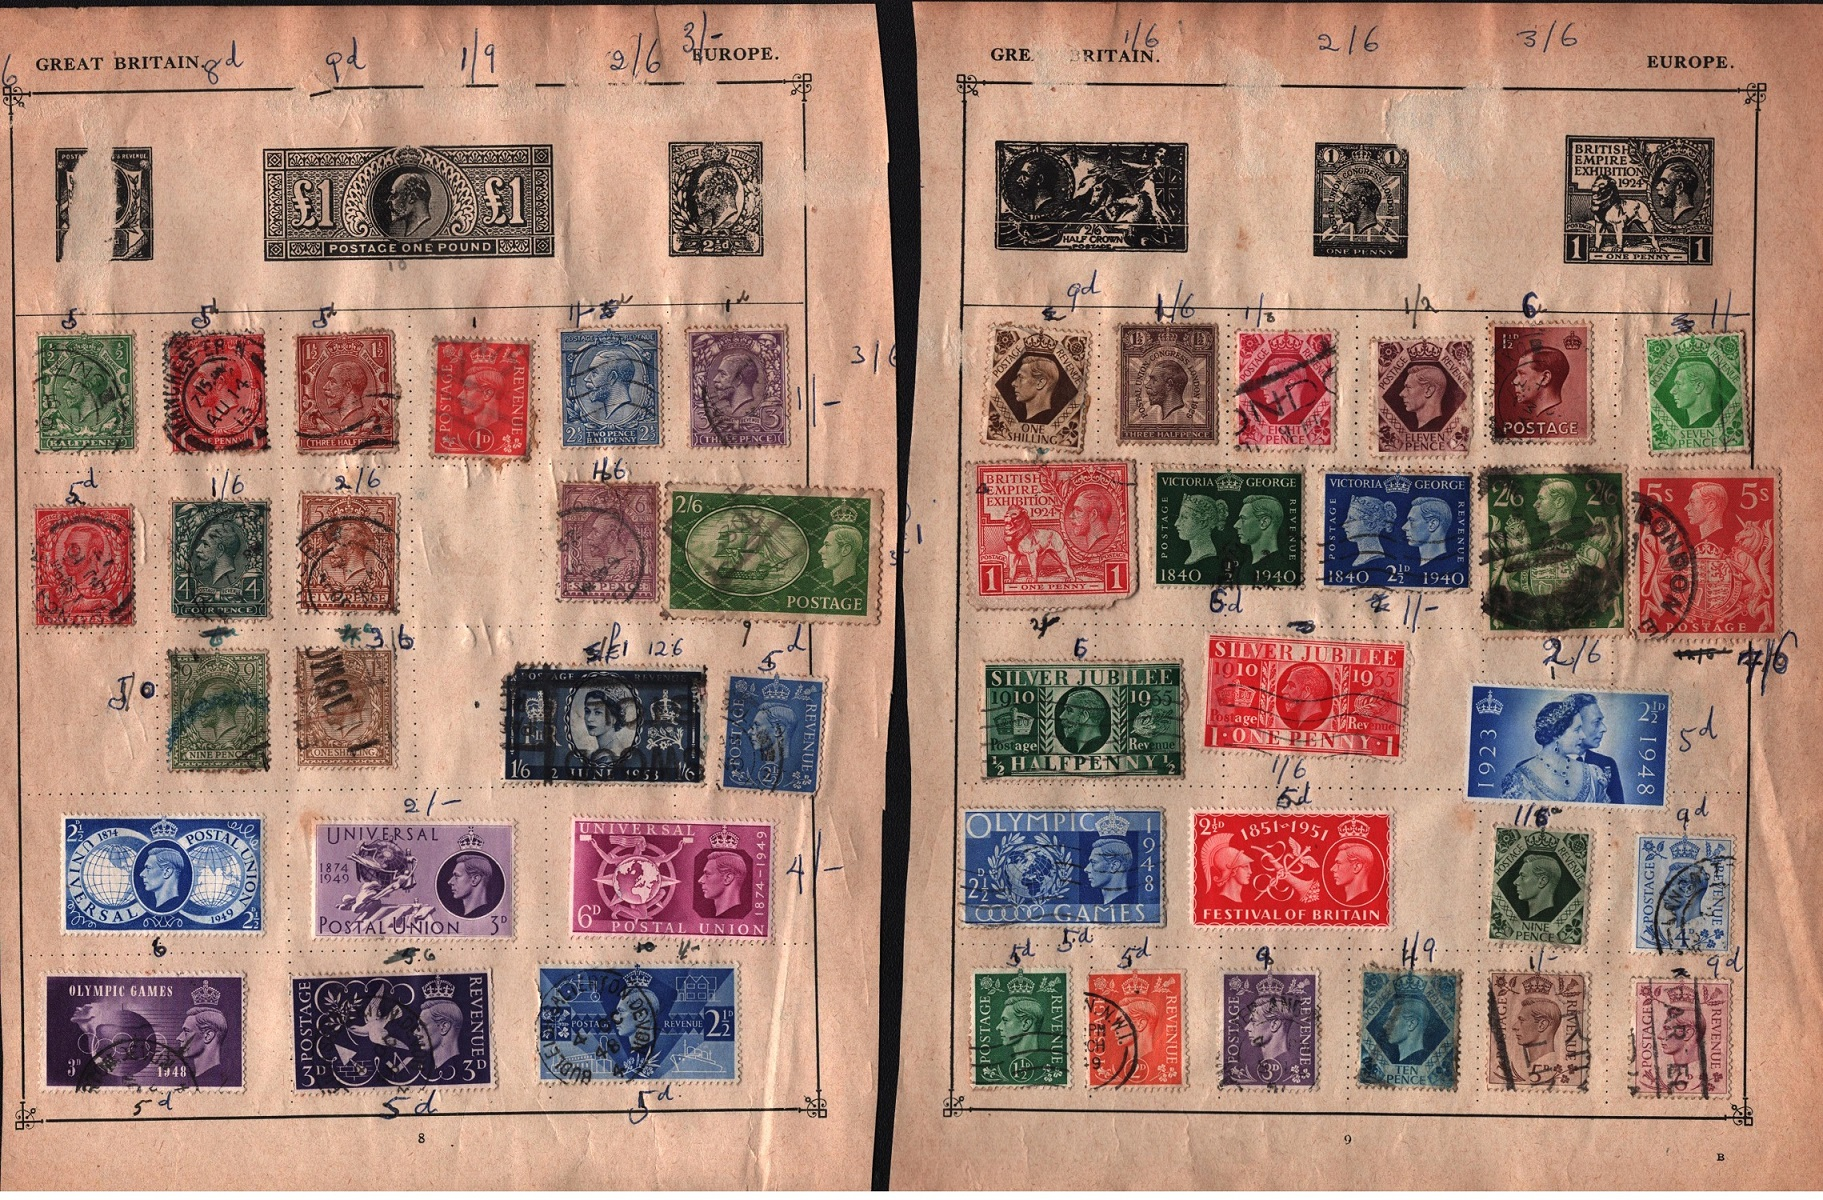 5 pages of GB stamps QV and QEII. Good condition. We combine postage on multiple winning lots and